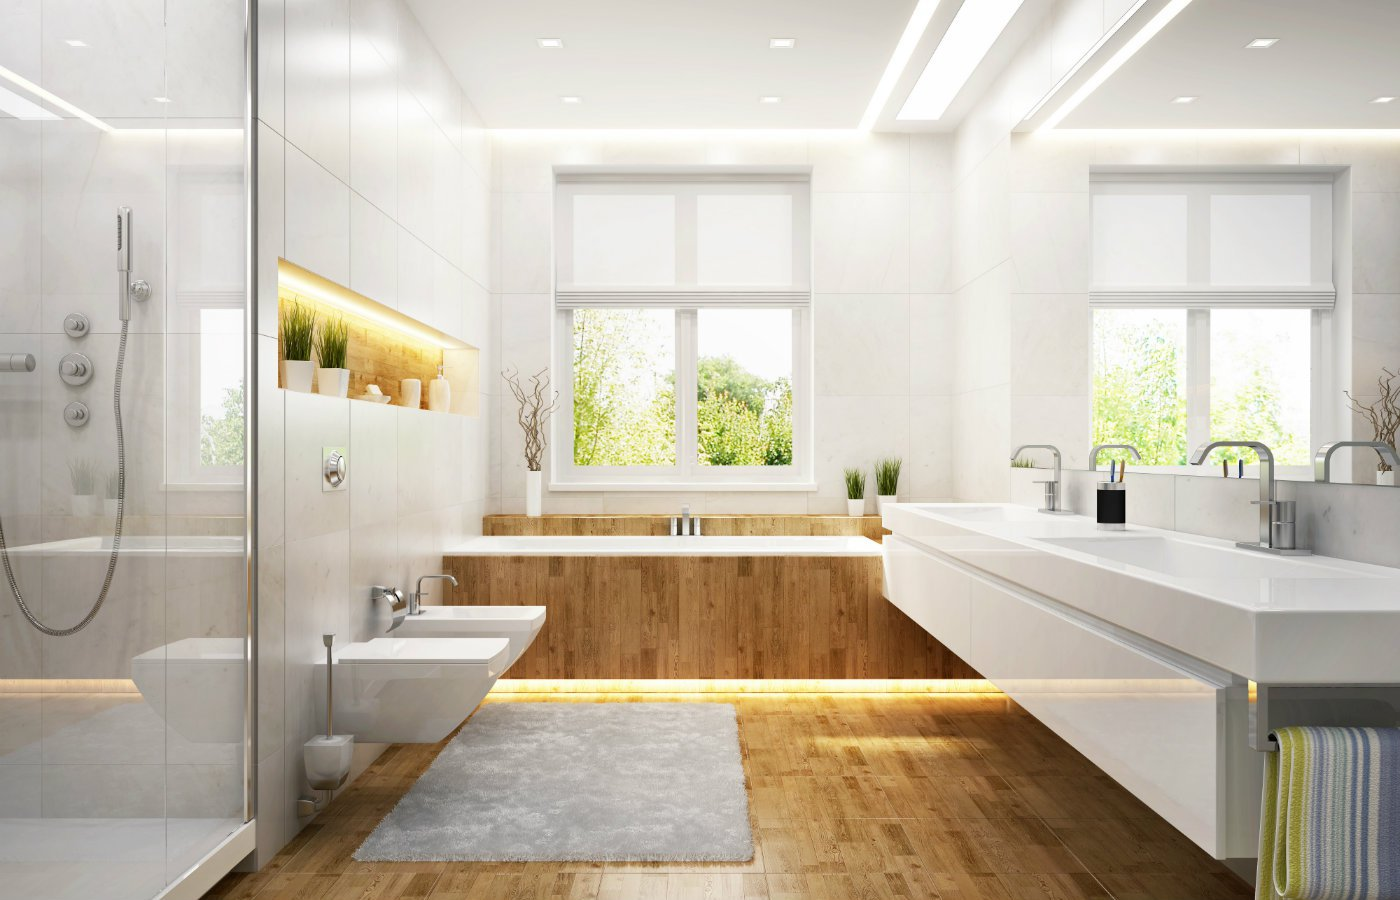 Add value to your home bathroom kitchen .jpg